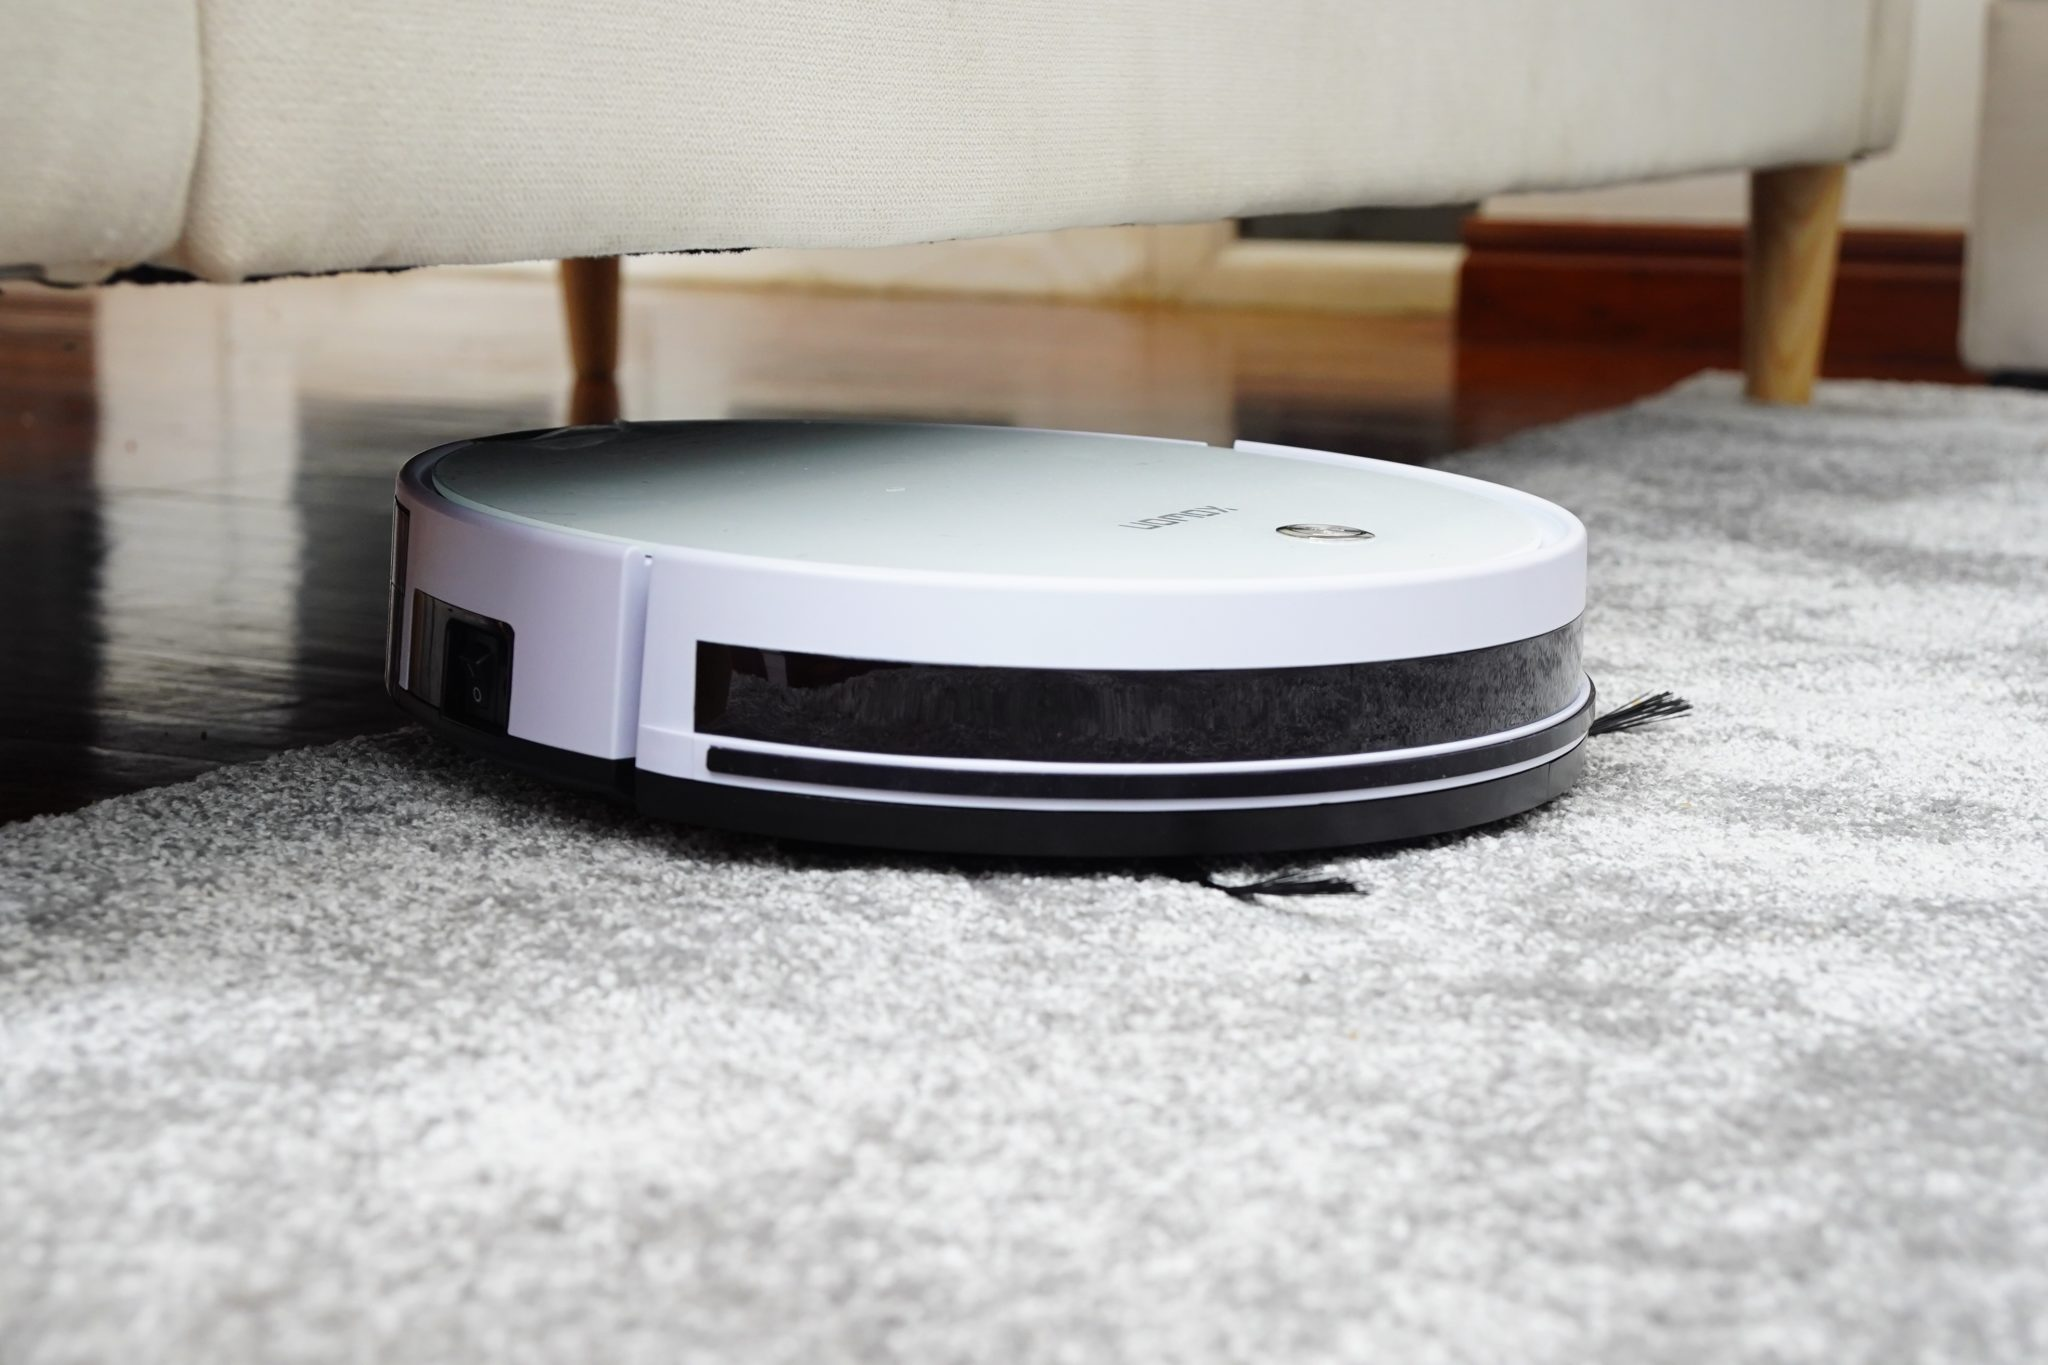 iRobot Roomba 880 vs 980